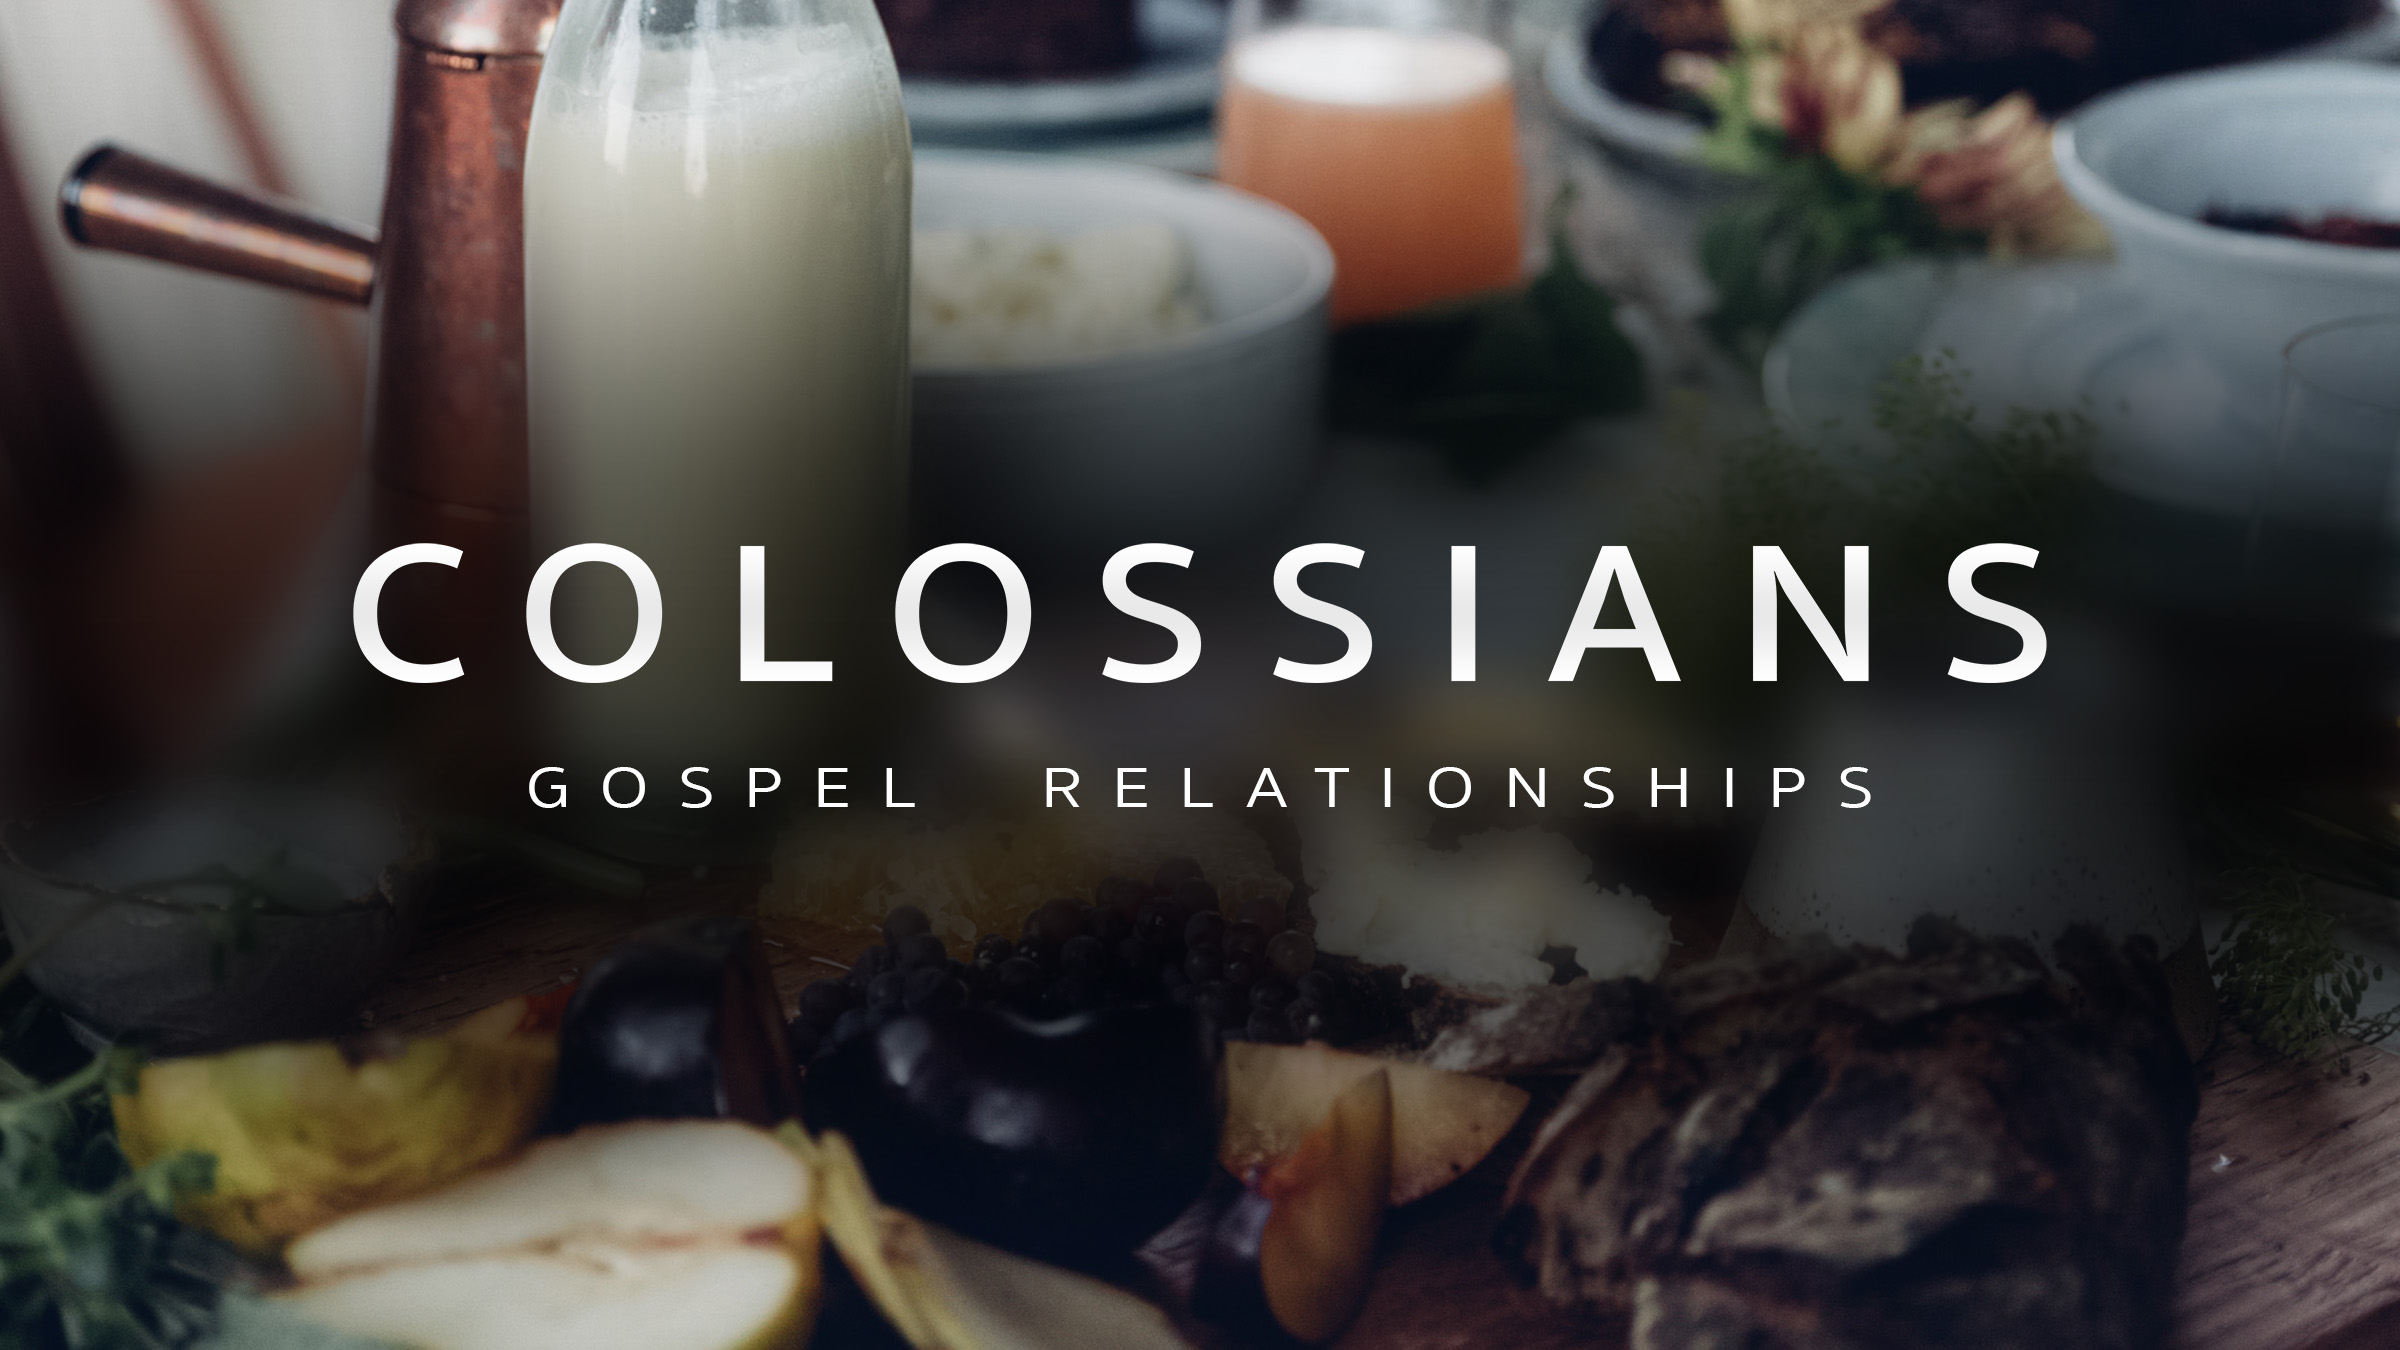 Colossians_Gospel_Relationships_Series_Logo_16.9.jpg